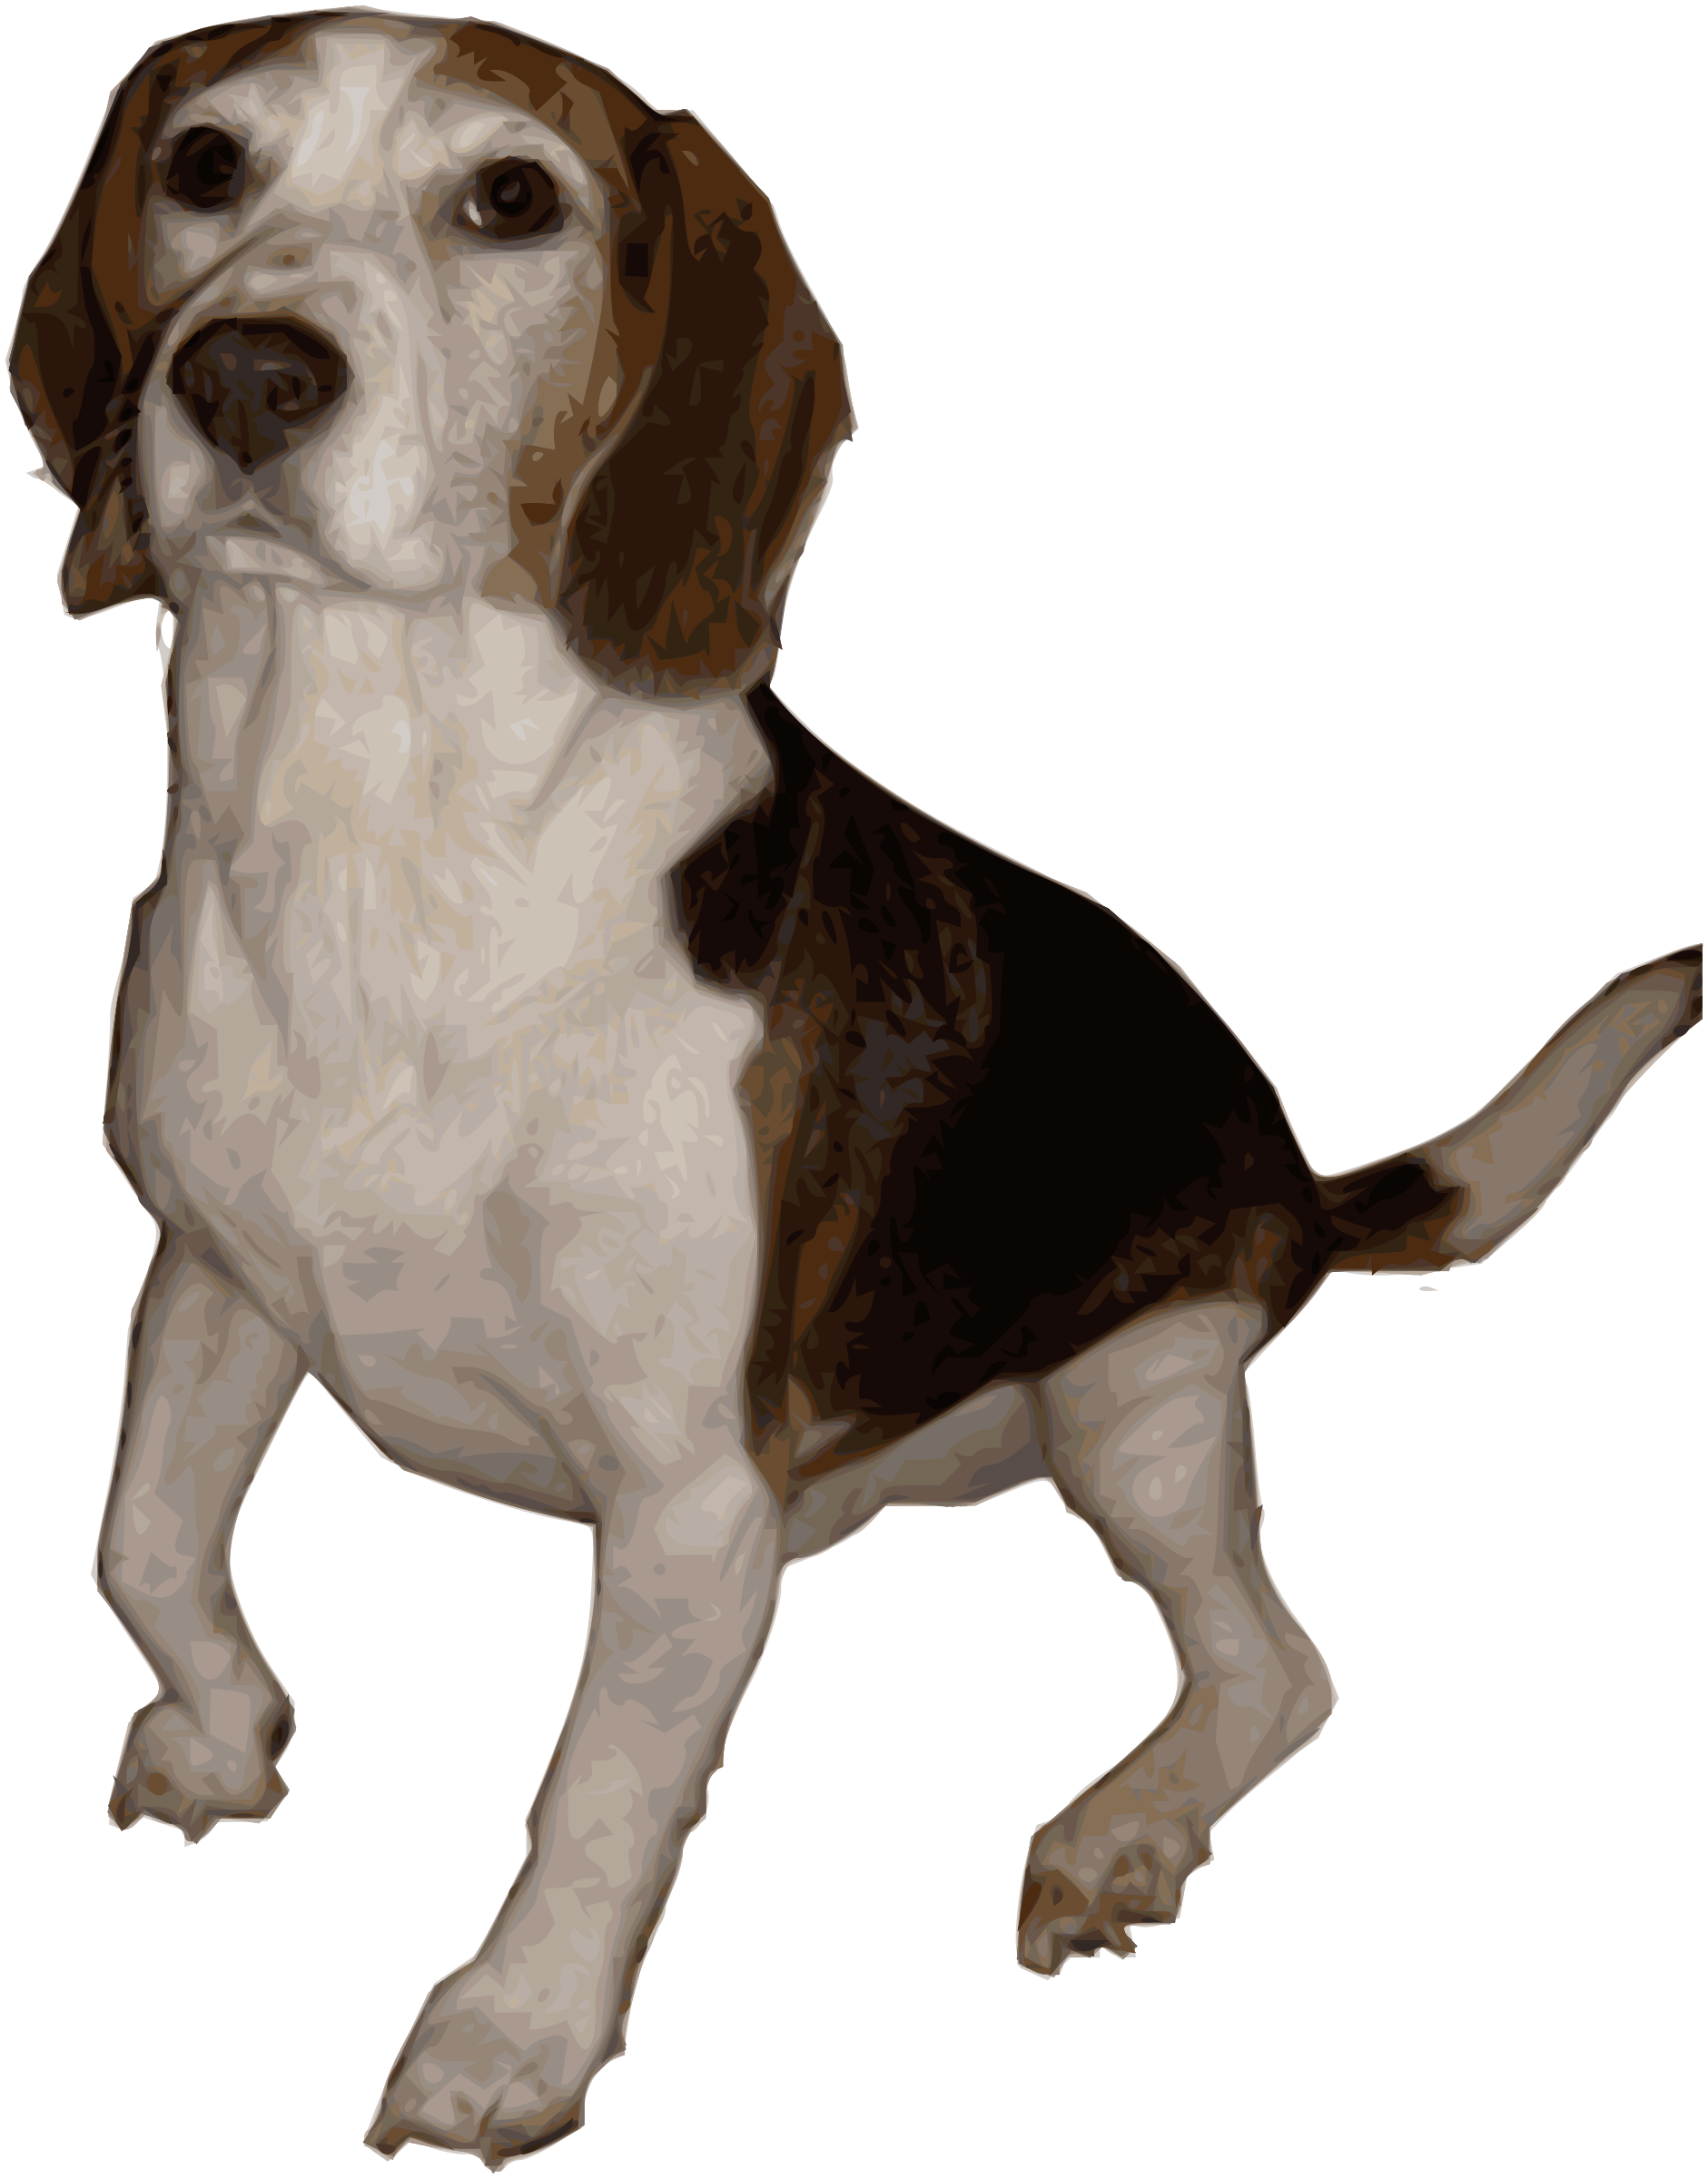 Pet clipart beagle. Medium version big image